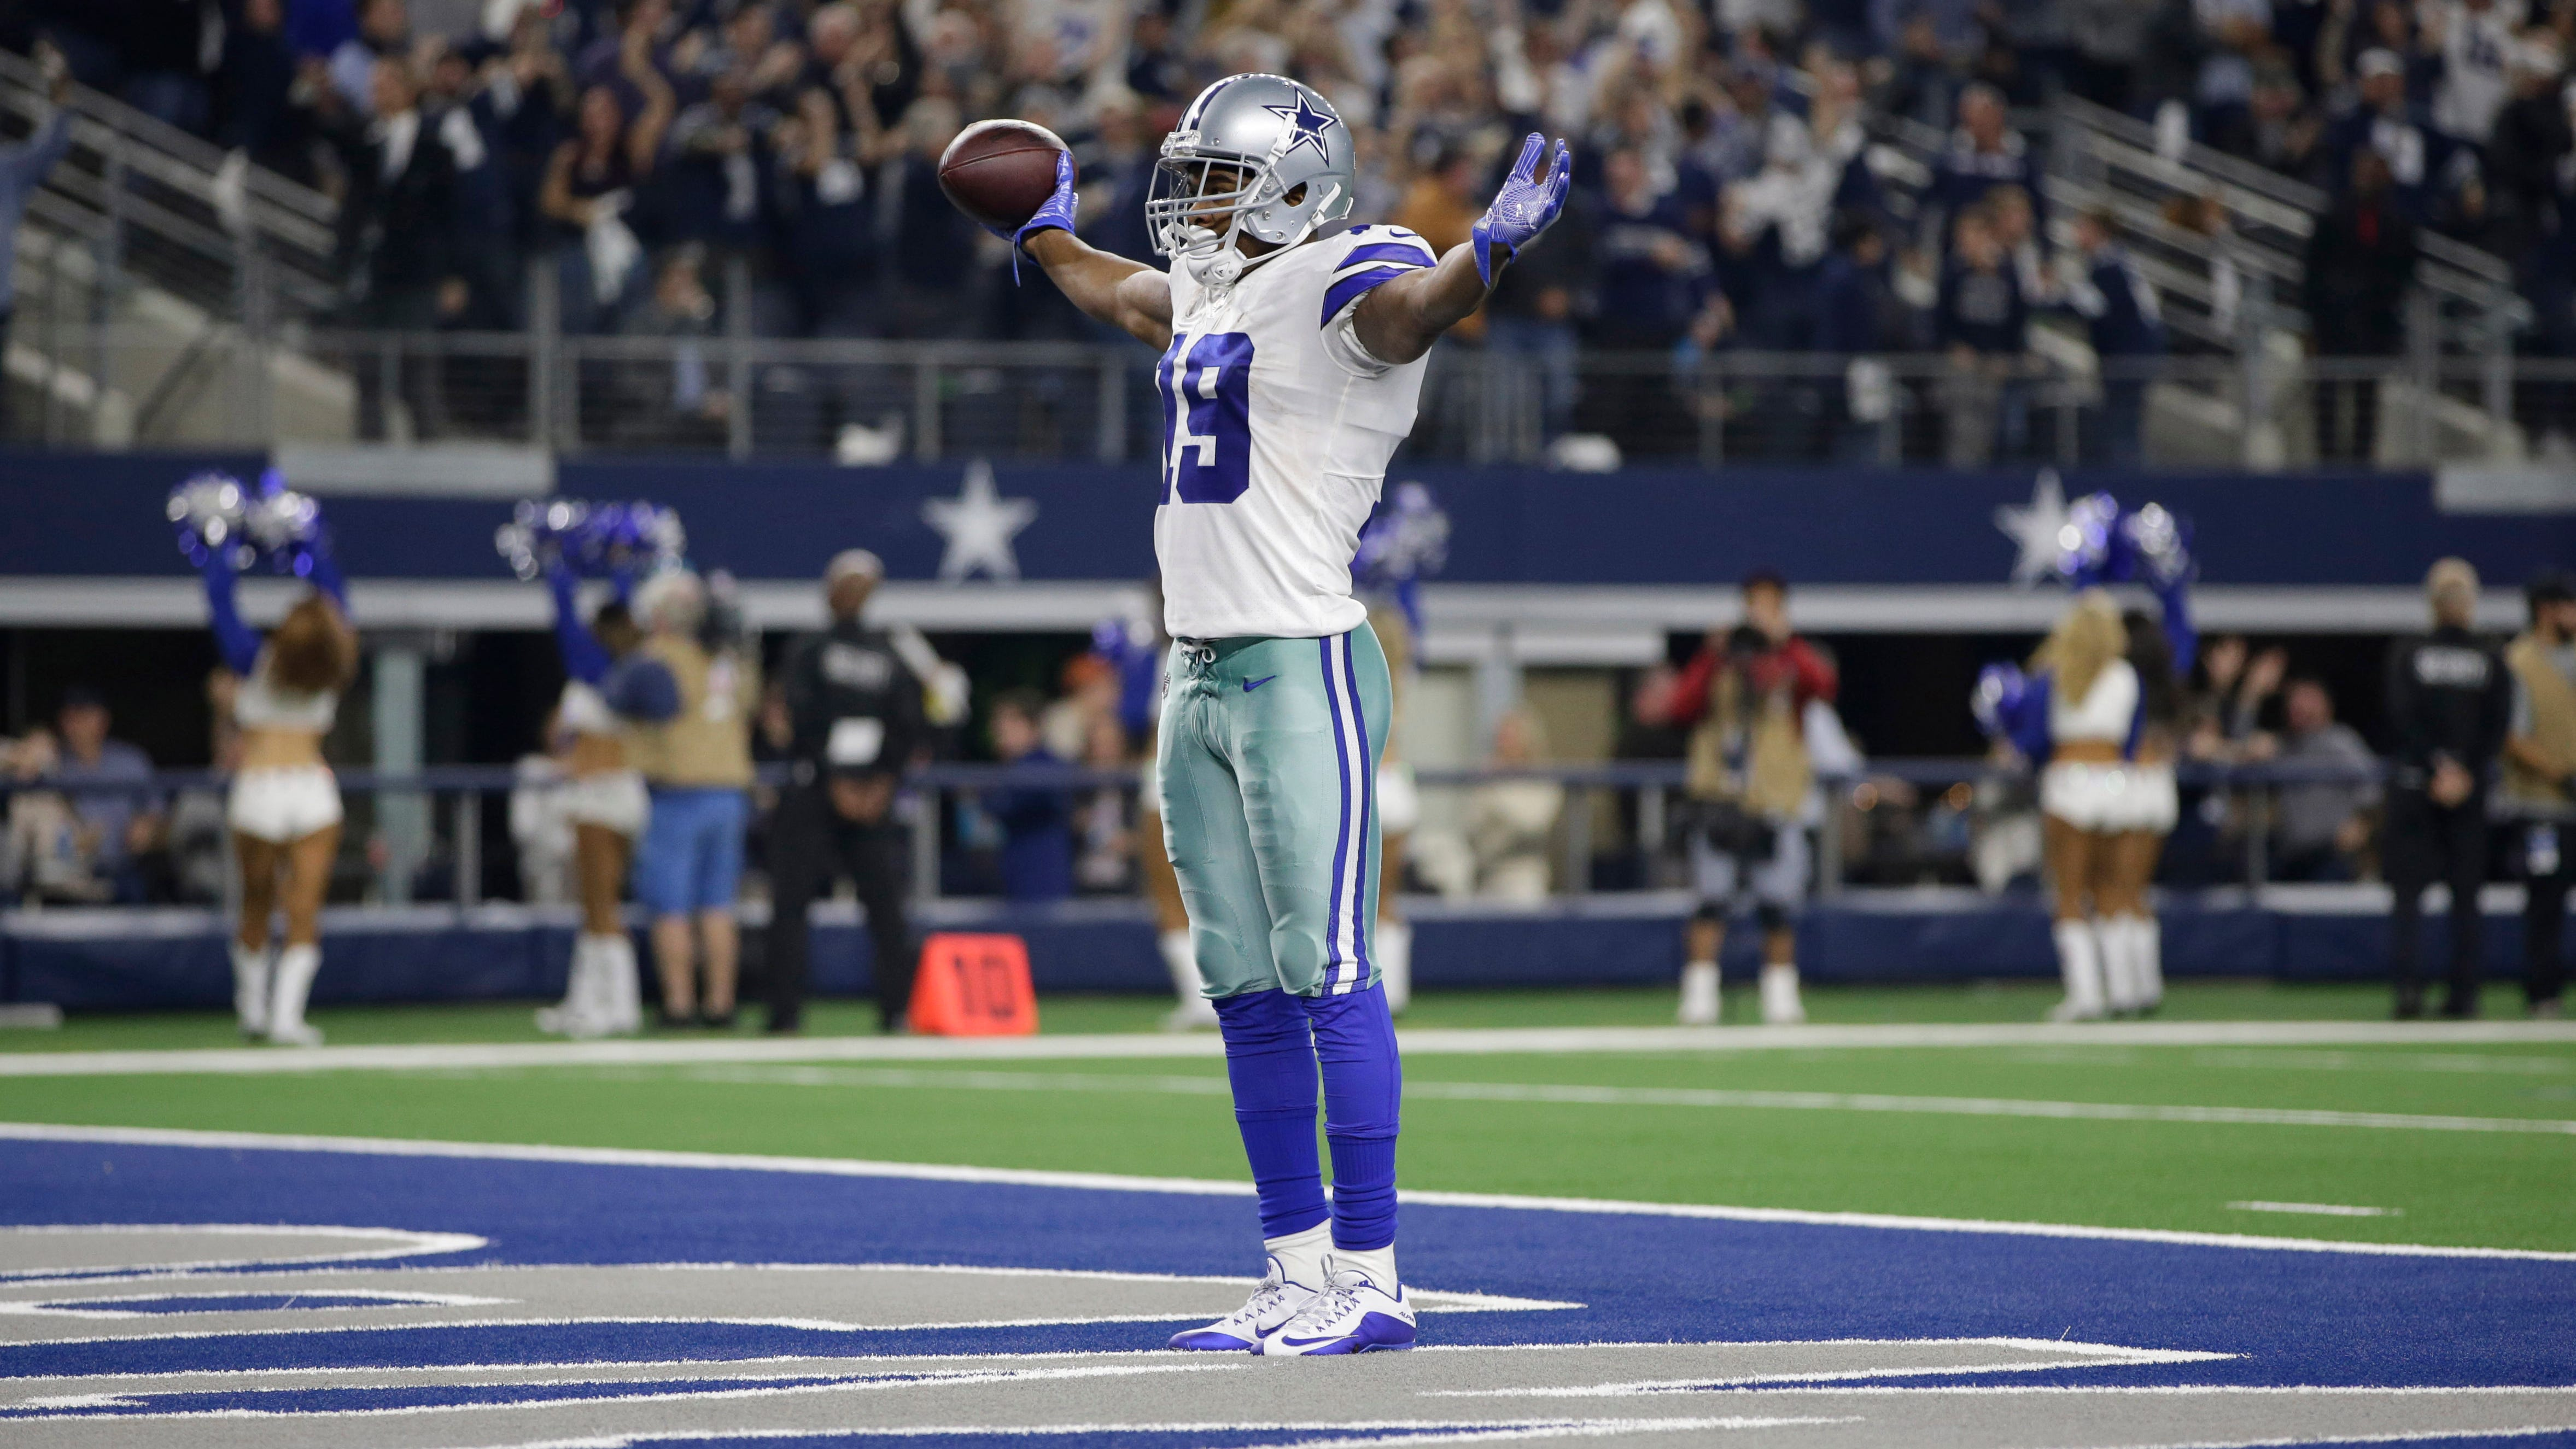 Dallas Cowboys wide receiver Amari Cooper (19) celebrates scoring a 75 yard touchdown pass in the fourth quarter against the Philadelphia Eagles at AT&T Stadium.